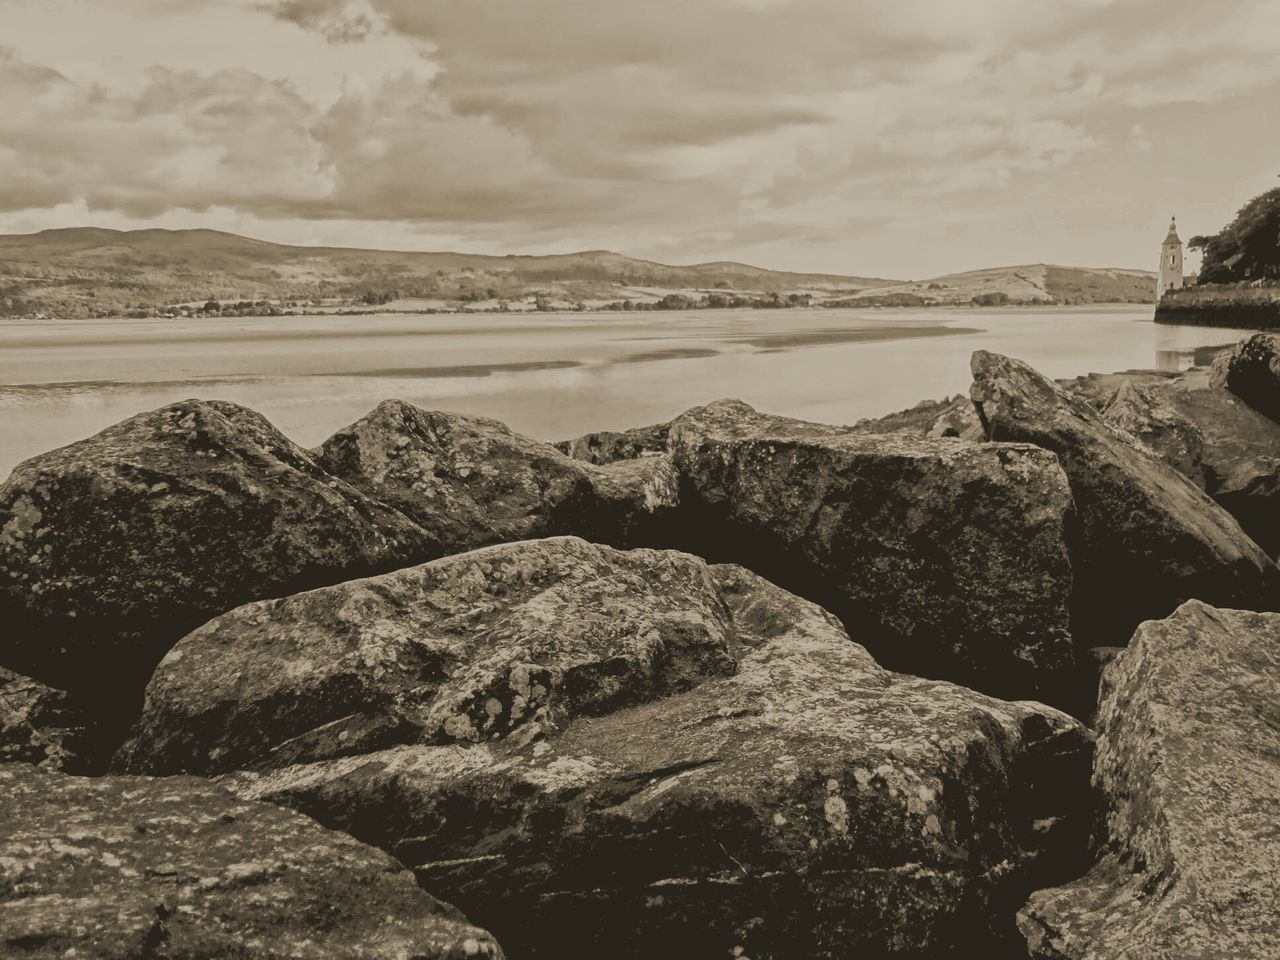 rock - object, sea, nature, water, beach, beauty in nature, tranquility, outdoors, rock, no people, scenics, tranquil scene, pebble, day, sky, pebble beach, horizon over water, groyne